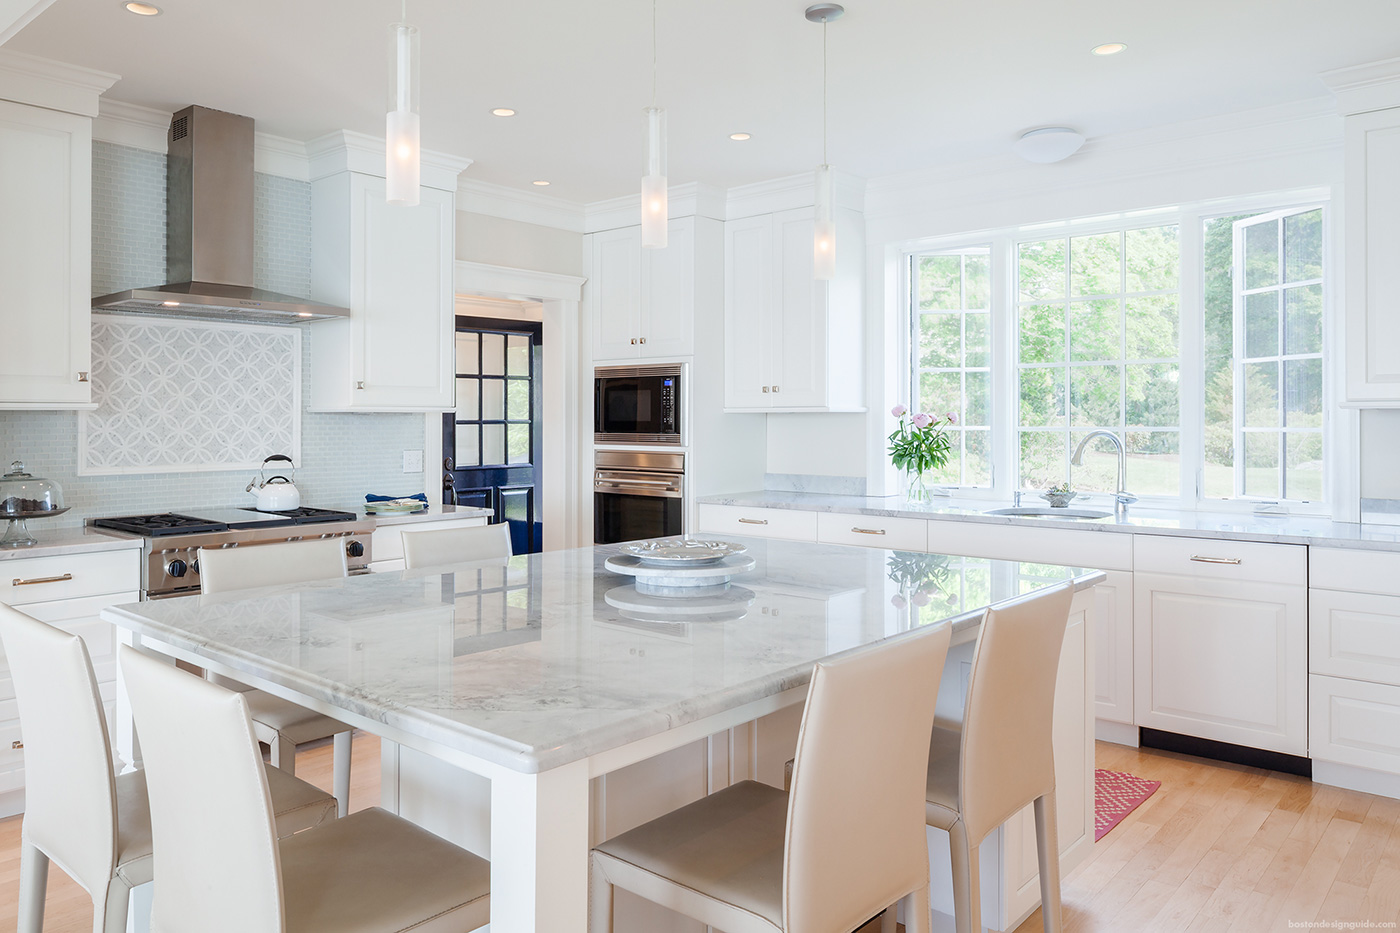 What white paint to use in high-end kitchen